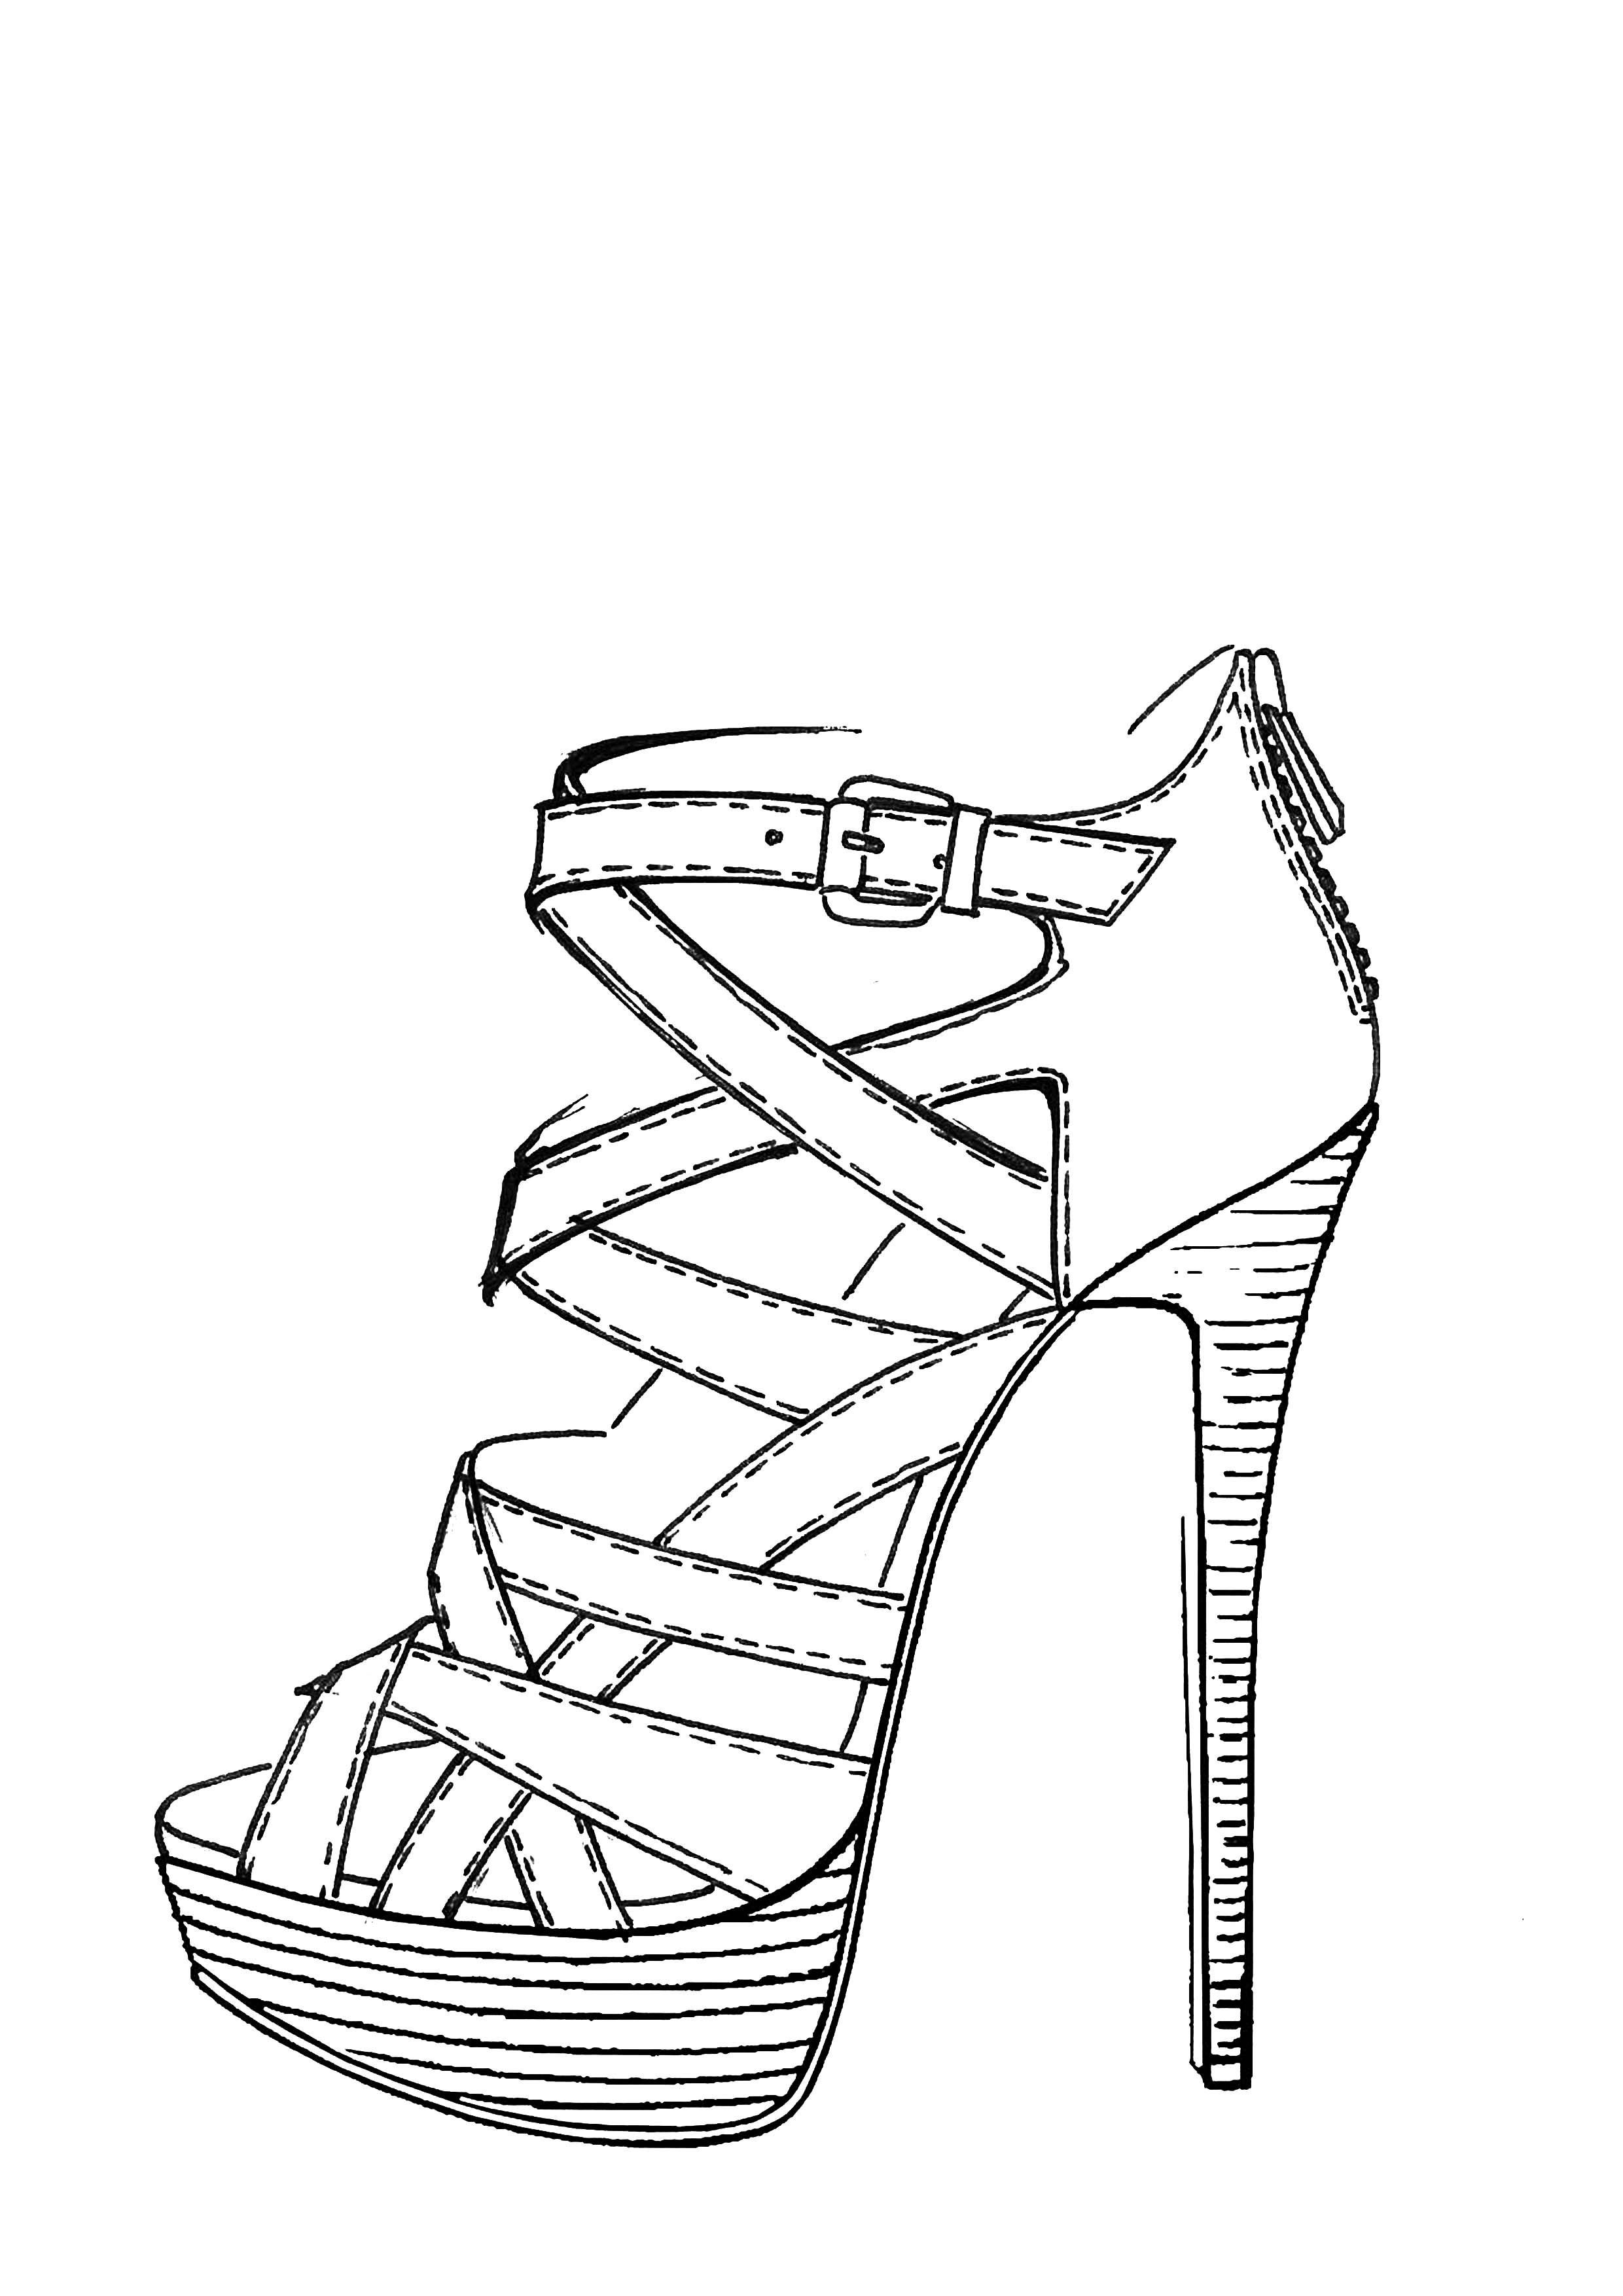 sketch of a high heel shoe how to draw a high heel shoe step by step drawing heel a of shoe high sketch